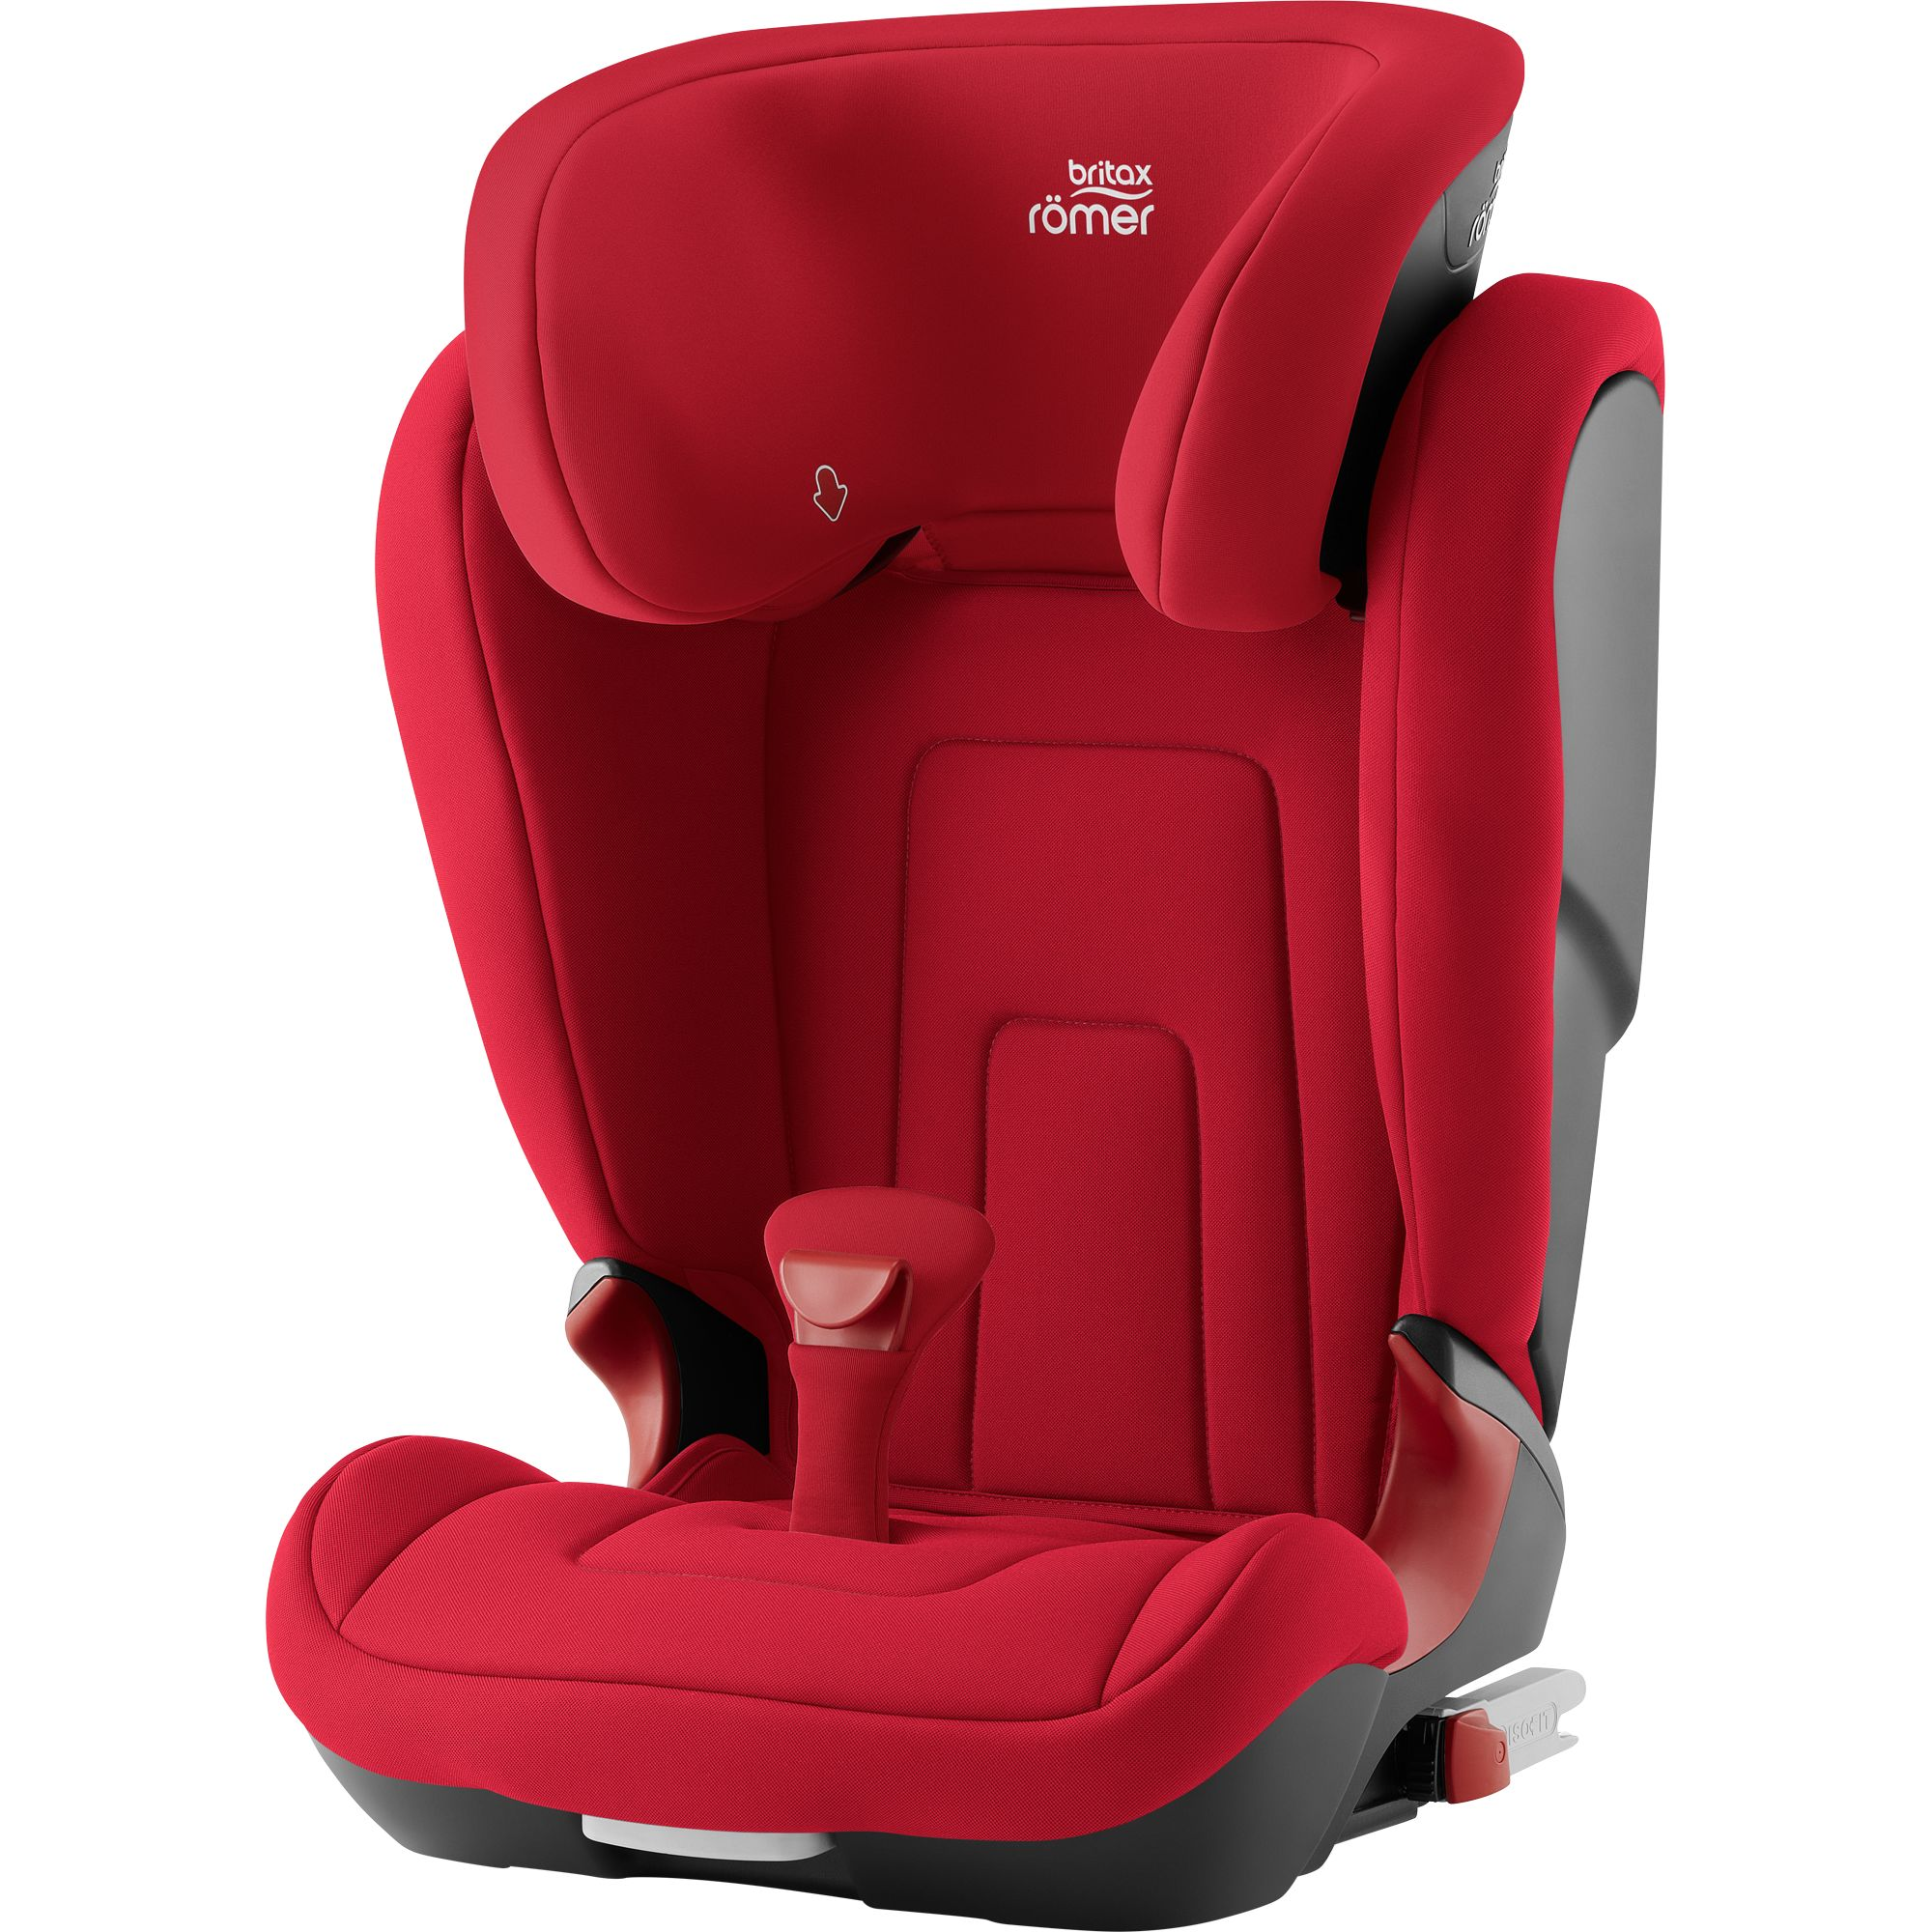 ROMER Kidfix 2 R Fire Red 2020